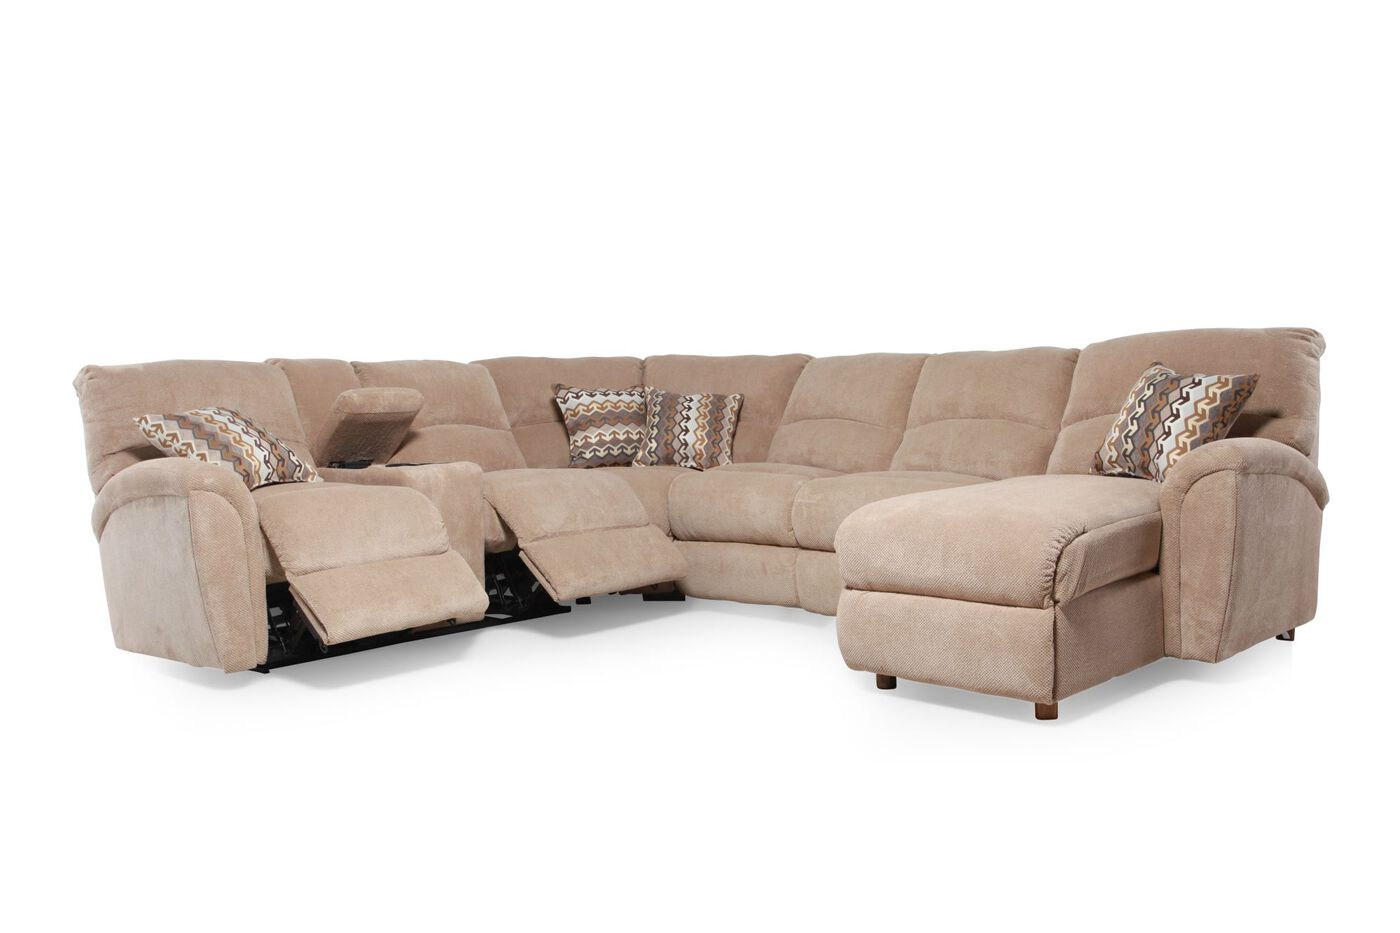 Casual sectional in latte mathis brothers furniture for Sectional sofas mathis brothers